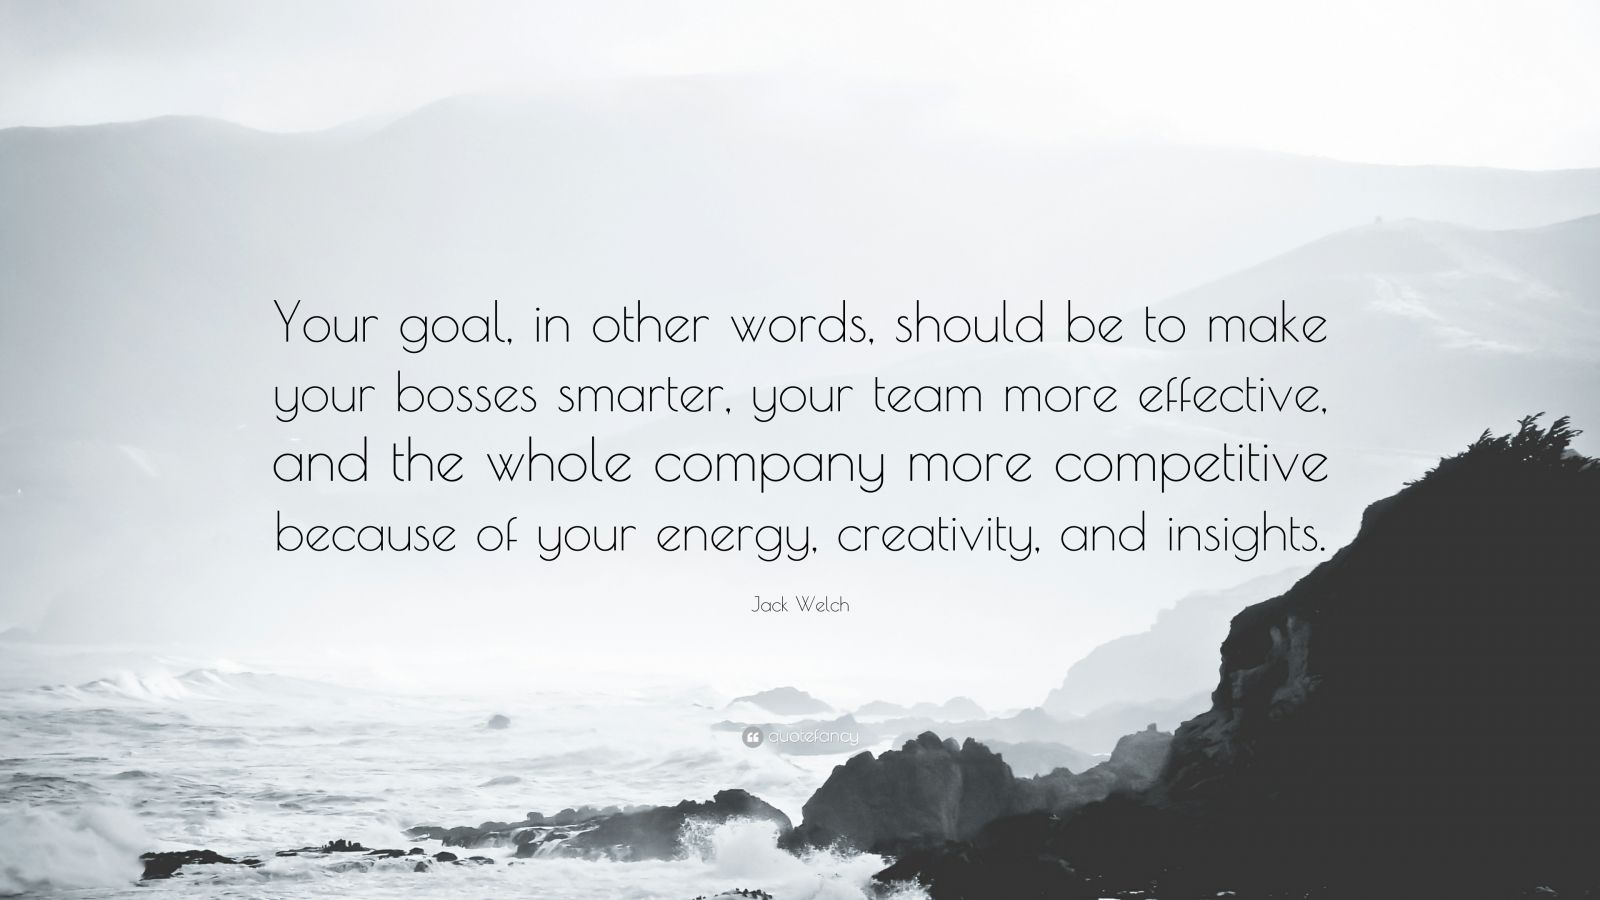 """Jack Welch Quote: """"Your goal, in other words, should be to make your bosses smarter, your team more effective, and the whole company more competitive because of your energy, creativity, and insights."""""""